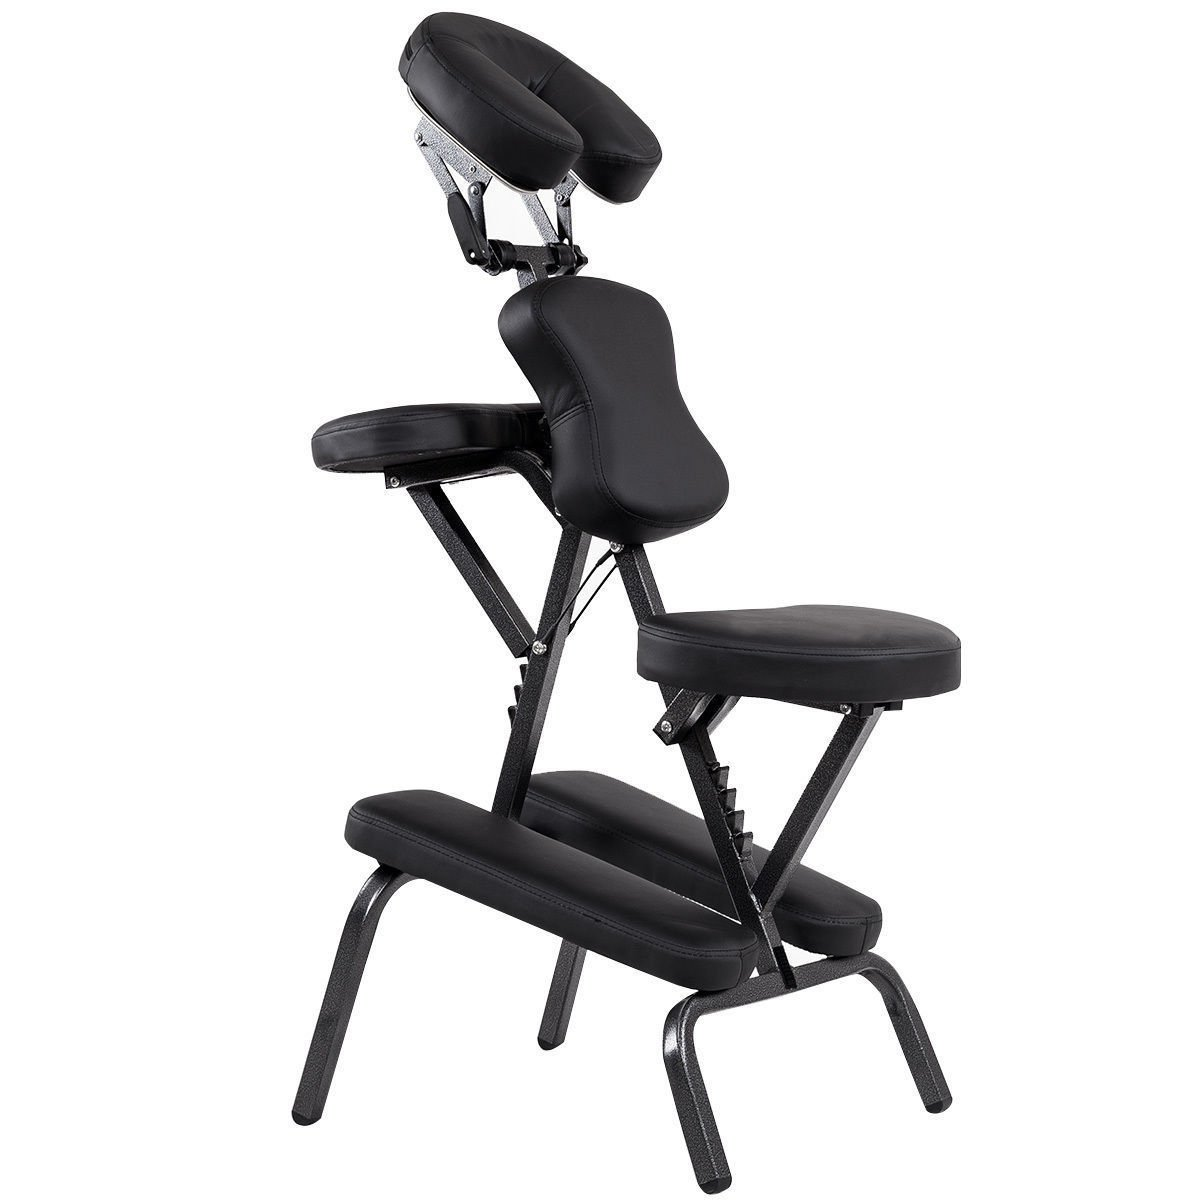 Portable PU Leather Pad Travel Massage Tattoo Spa Chair W/Carrying Bag Black by Allblessings (Image #2)